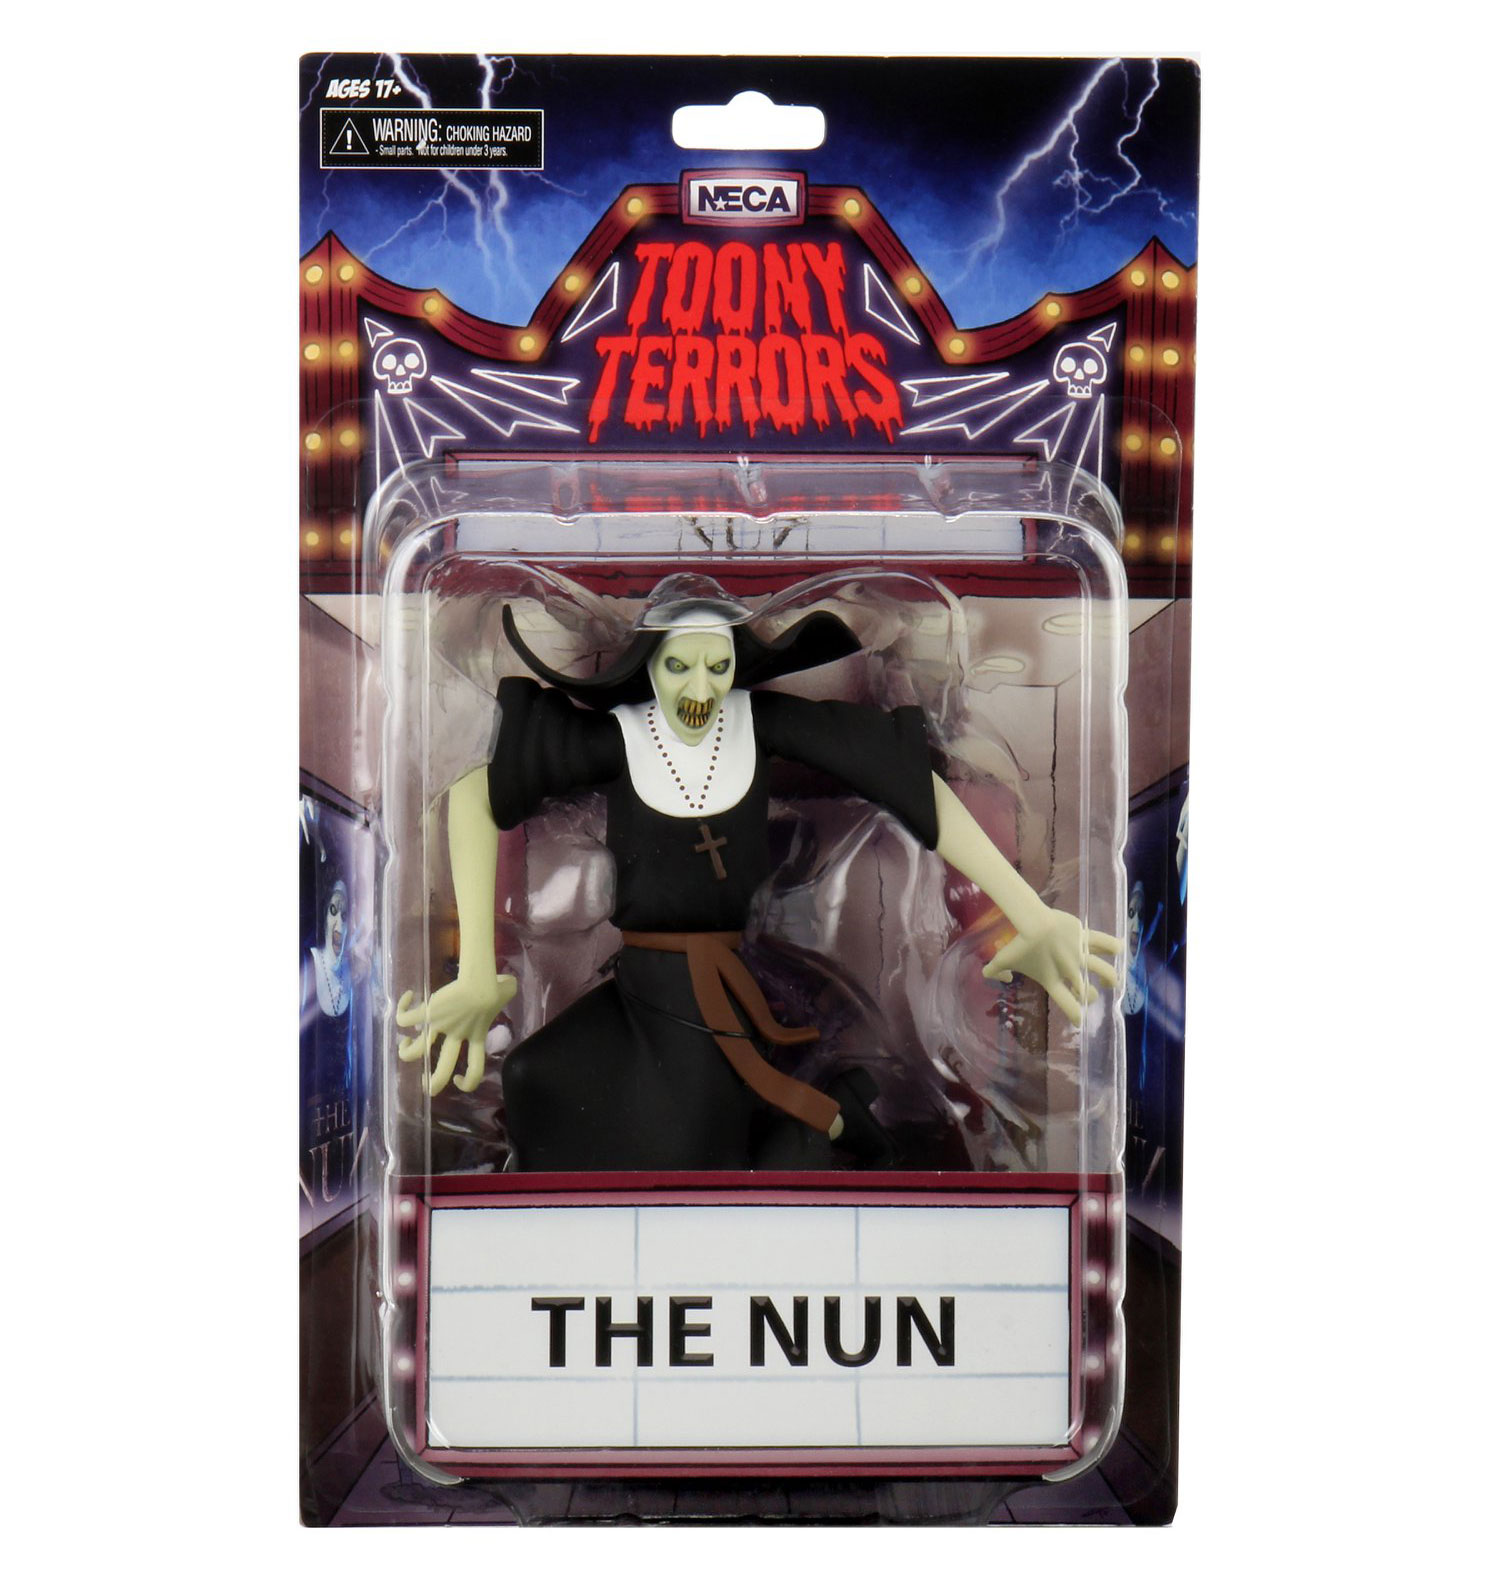 neca-toony-terrors-the-nun-action-figure-packaging-1